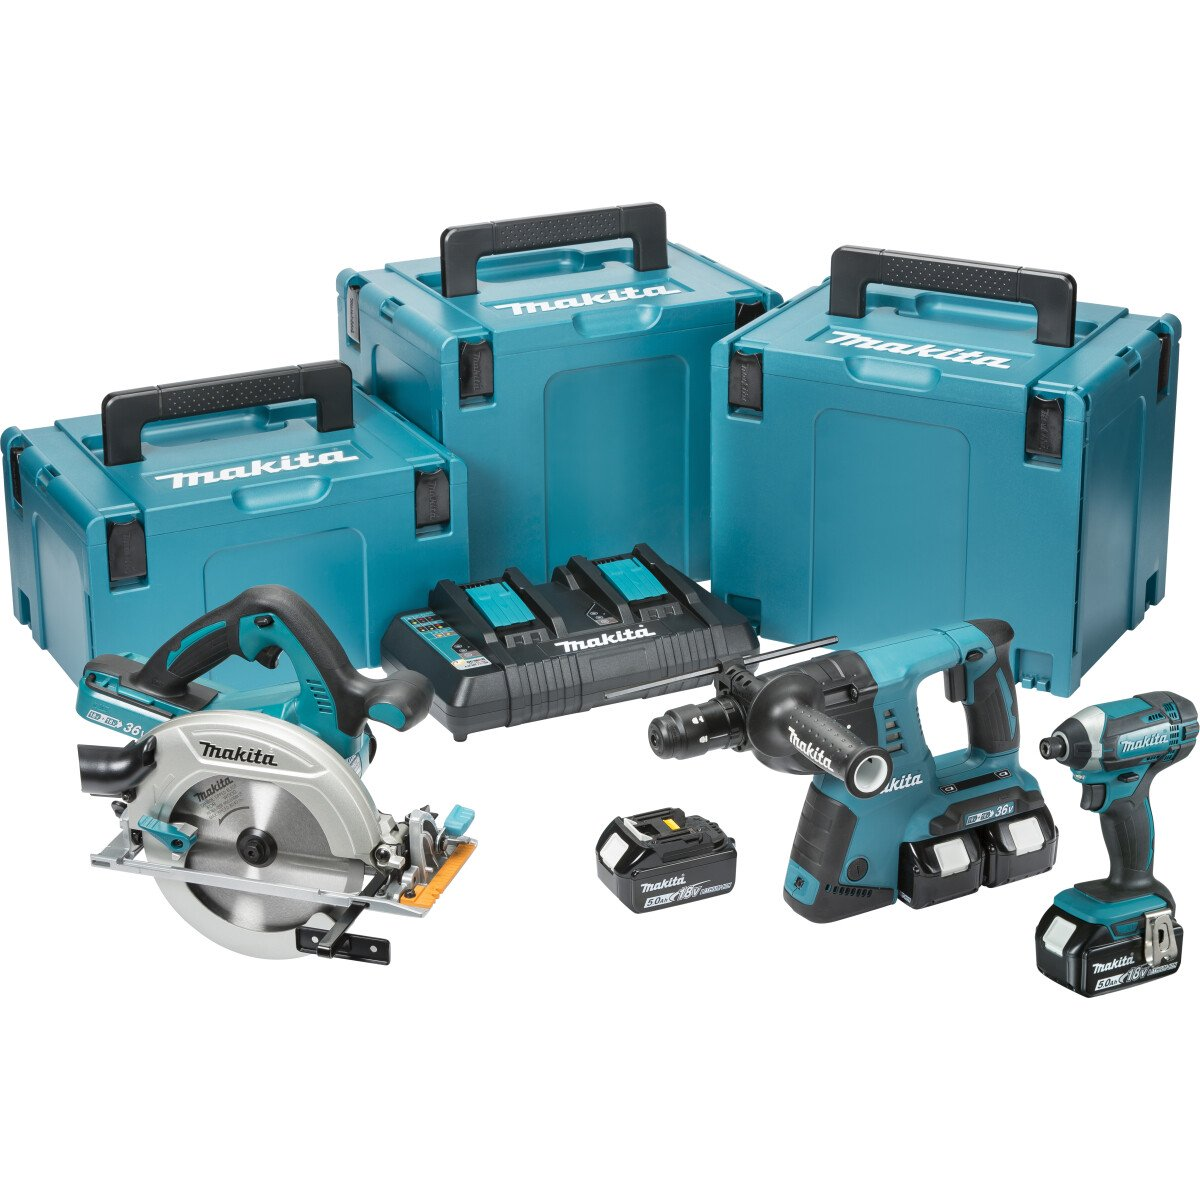 Makita DLX3049PTJ Twin 18V 3 Piece Kit SDS Hammer + Circular Saw + Impact Driver with 4x 5.0Ah Batteries in 3x MakPac Stacking Cases